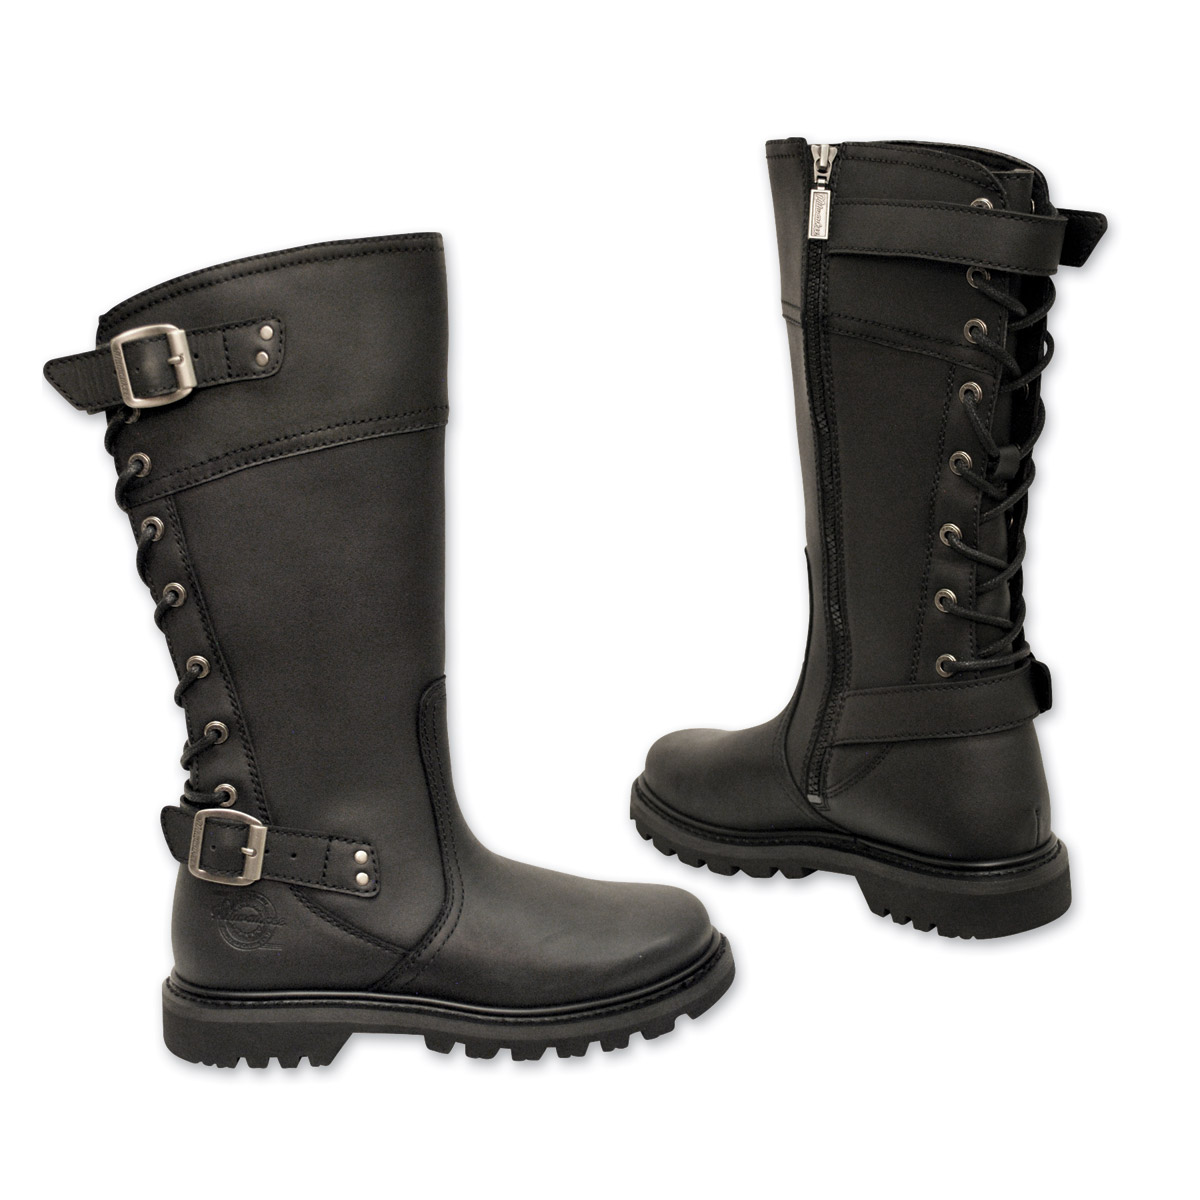 eb646799b7fe Milwaukee Motorcycle Clothing Co. Women s Dreamgirl Black Leather Boots